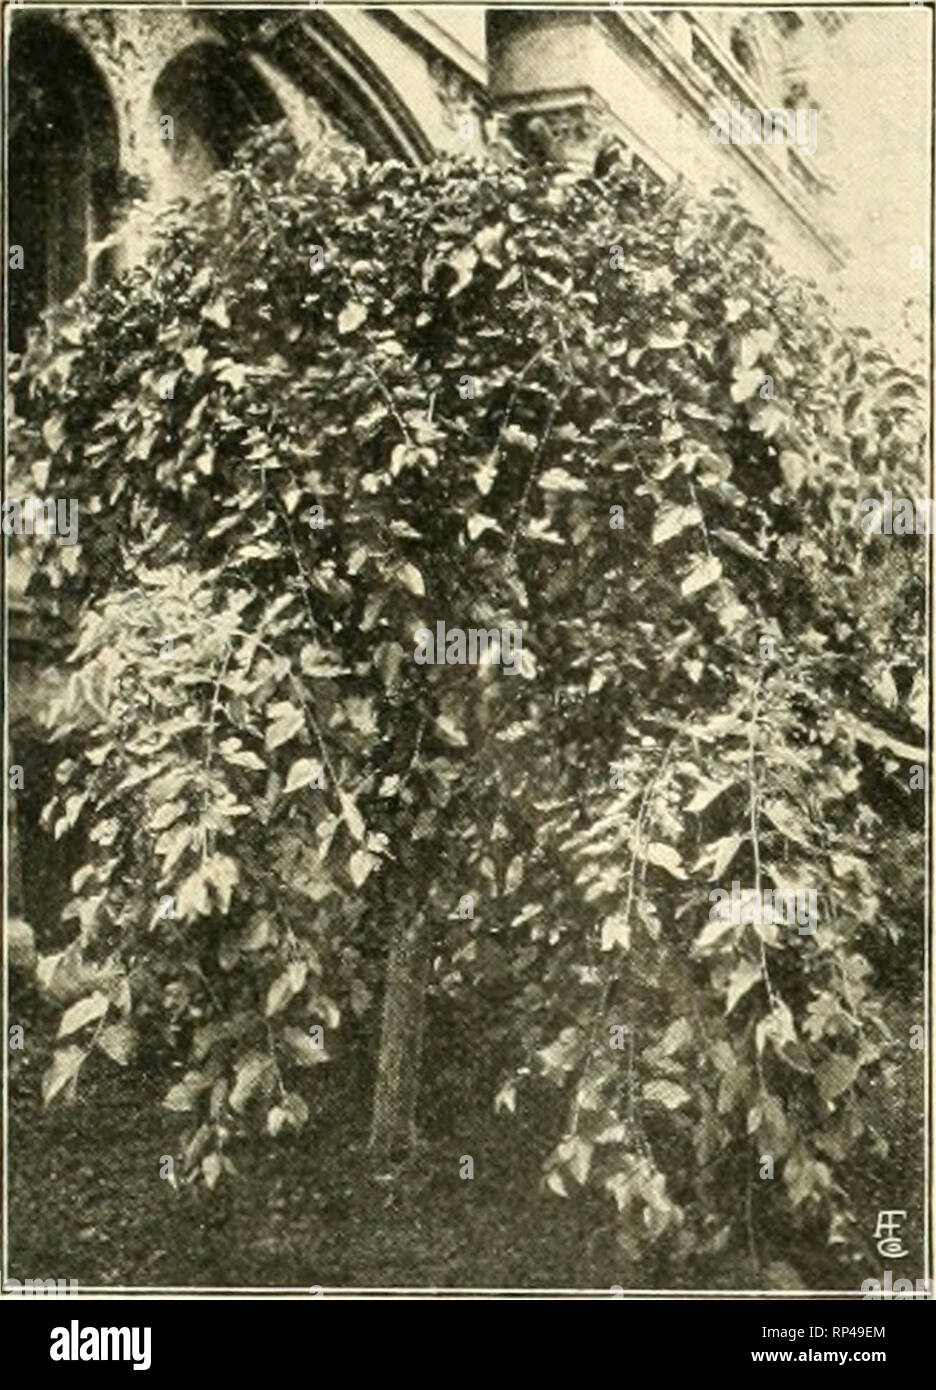 . The American florist : a weekly journal for the trade. Floriculture; Florists. tgn. The American Florist. 695 SEASONABLE STOCK. TREES Each Moras Pendula (Wcepinu Mulberry). 3 yr.. heads 5 ft. hijh. stems IK to IHin $1.25 Cherry, Earlv Richmond aod Dyebrus. 1 to IVi in. stem 6 to 8 ft SO AcerNegimdo (Box Elder). 2 to 24 in. stems. 8 to 10 ft 1 00 Salix Americana ( Vmerican Weeping Willow). IH to Wi in. stems 7 to 8 ft., nice heads.. 1 25 DUmus Montana Pendula (Camperdown Weeping Elm). 2H to 3 in. stems. 10 to 12 ft.. 3- yr. heads 25 Populus Monilifera (Carolina Poplar), 2 to 2ii in 75 SHRUBS  - Stock Image